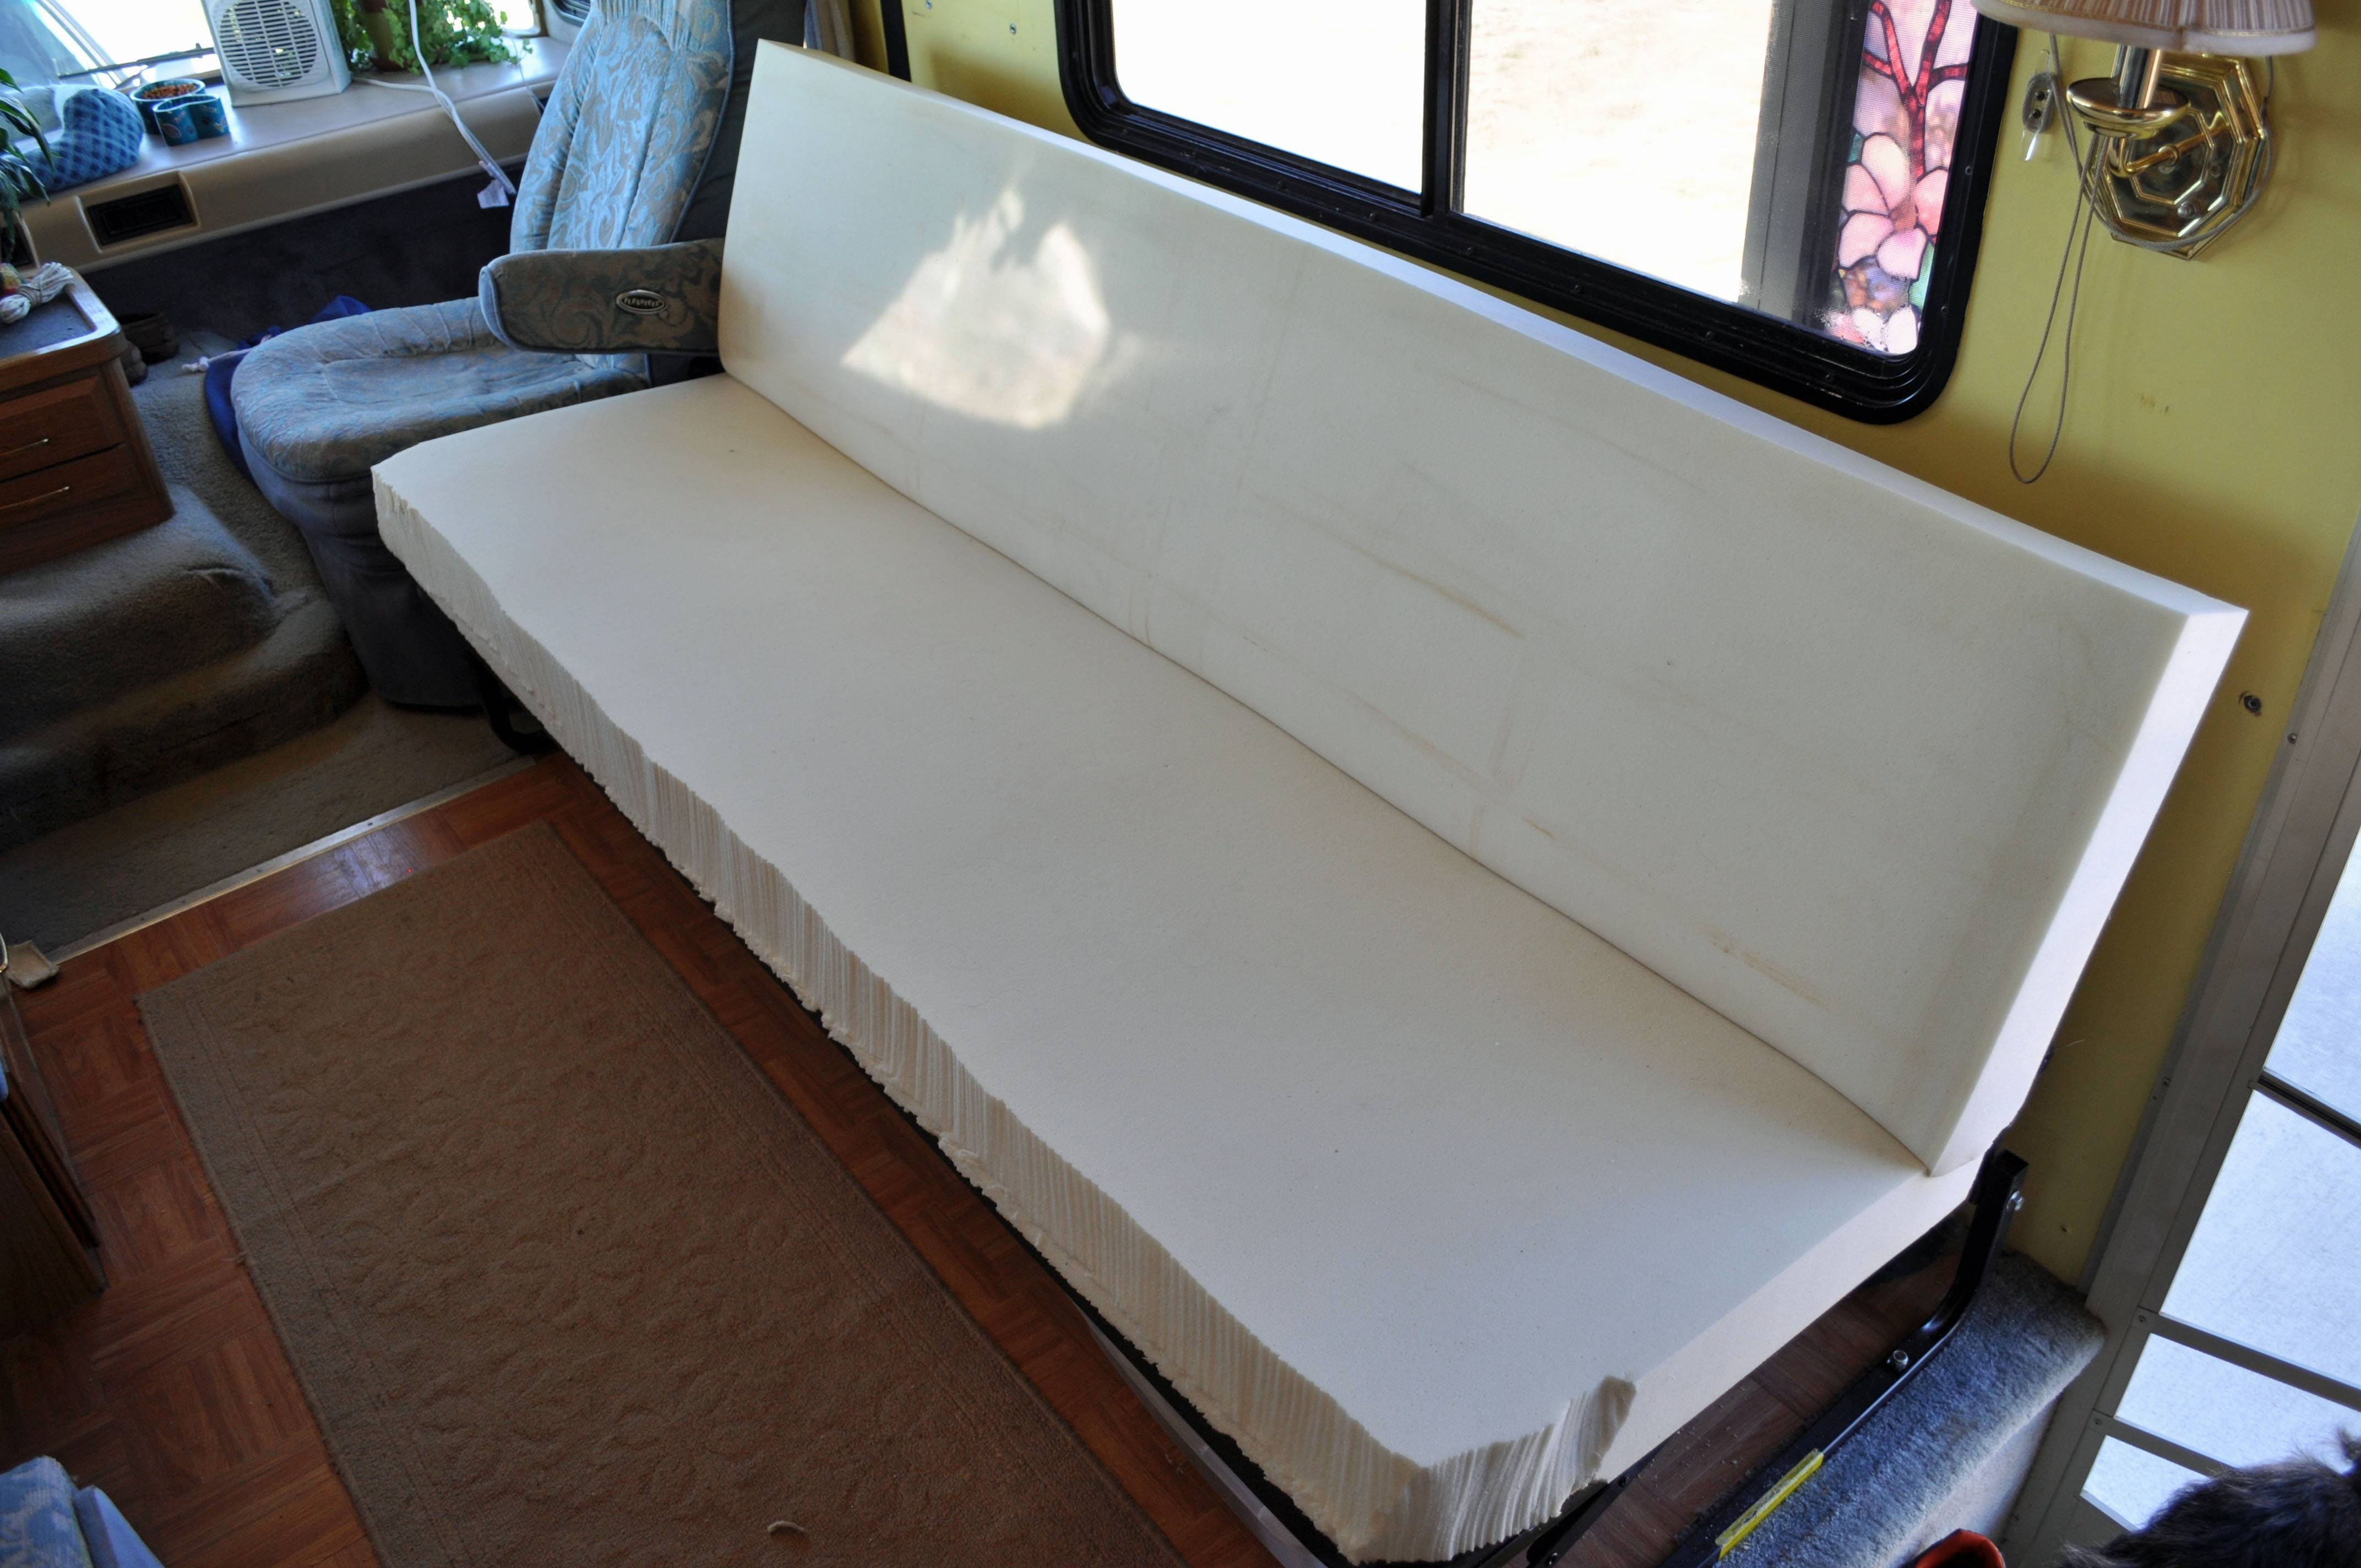 Jackknife Sofa Bed For Rv 80 With Jackknife Sofa Bed For Rv throughout Rv Jackknife Sofas (Image 9 of 15)